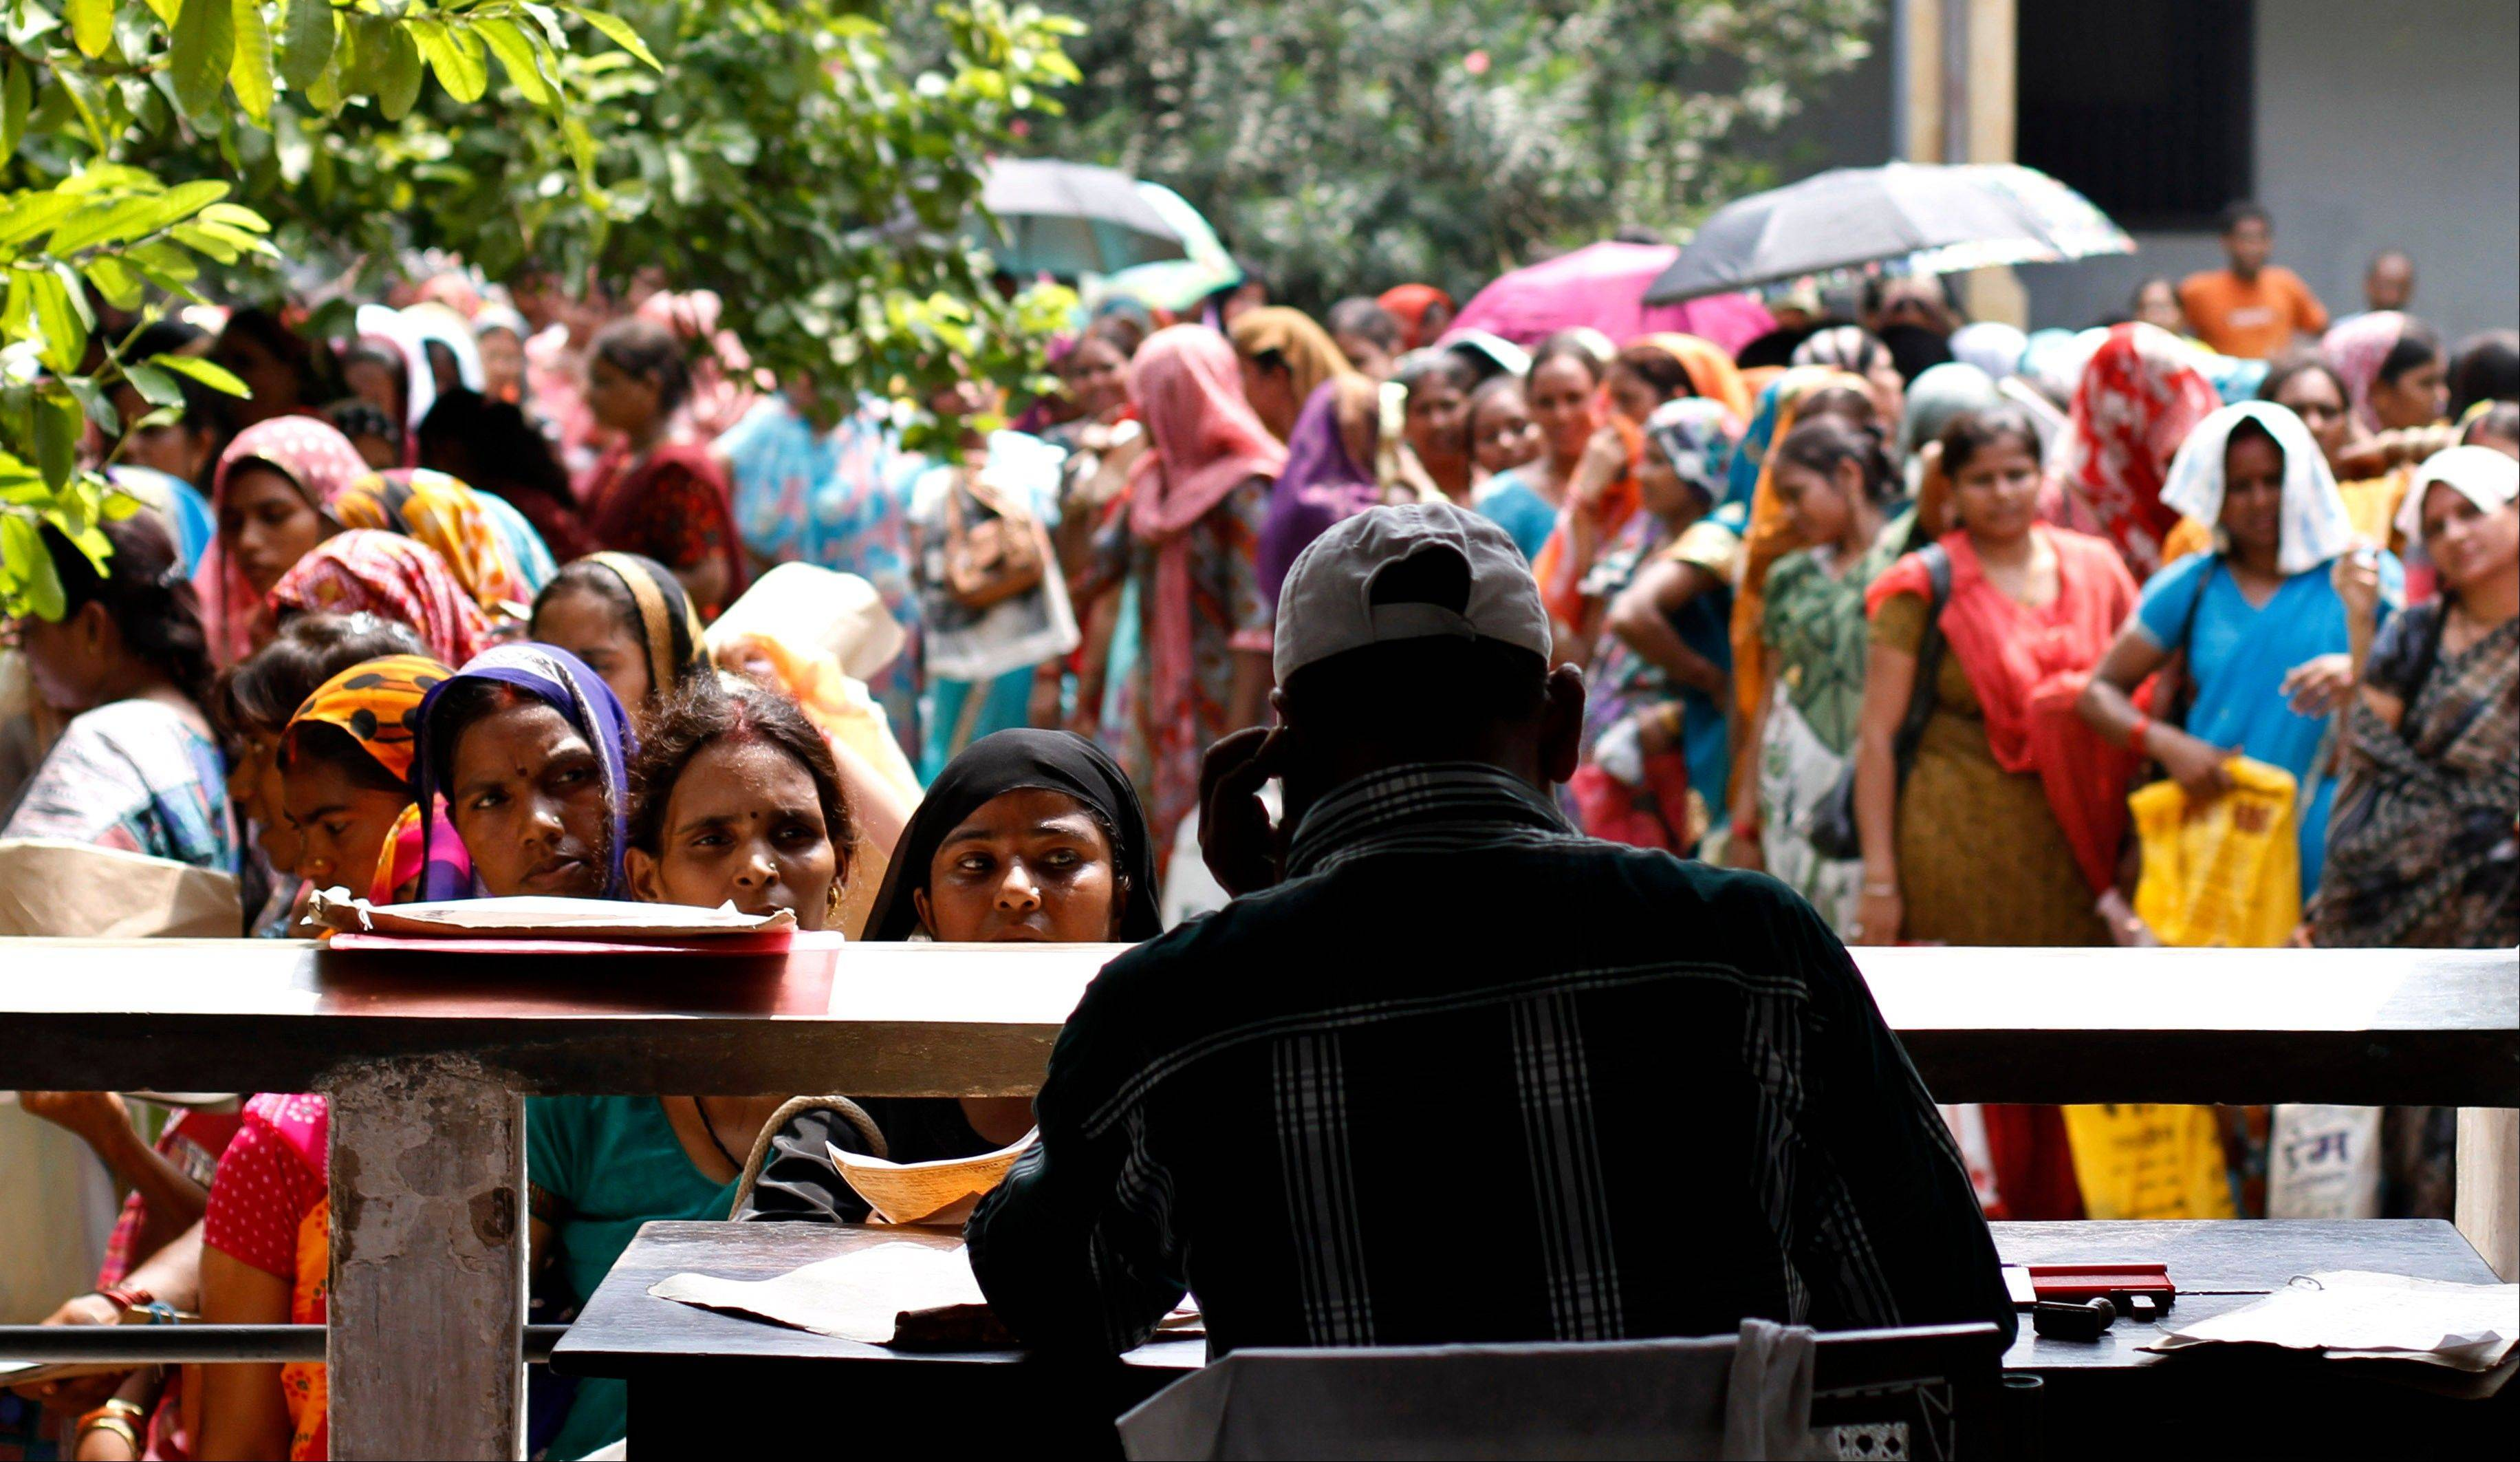 Unemployed educated Indian women stand in queues to register themselves at the Employment Exchange Office in Allahabad, India. India, with the world�s largest chunk of illiterates at over 250 million, has to invest heavily in education and skills training, said Ashish Bose, a leading demographer. While millions of jobseekers have impressive sounding diplomas, many don�t have the skills promised by those certificates from colleges and technical institutes with poor standards.